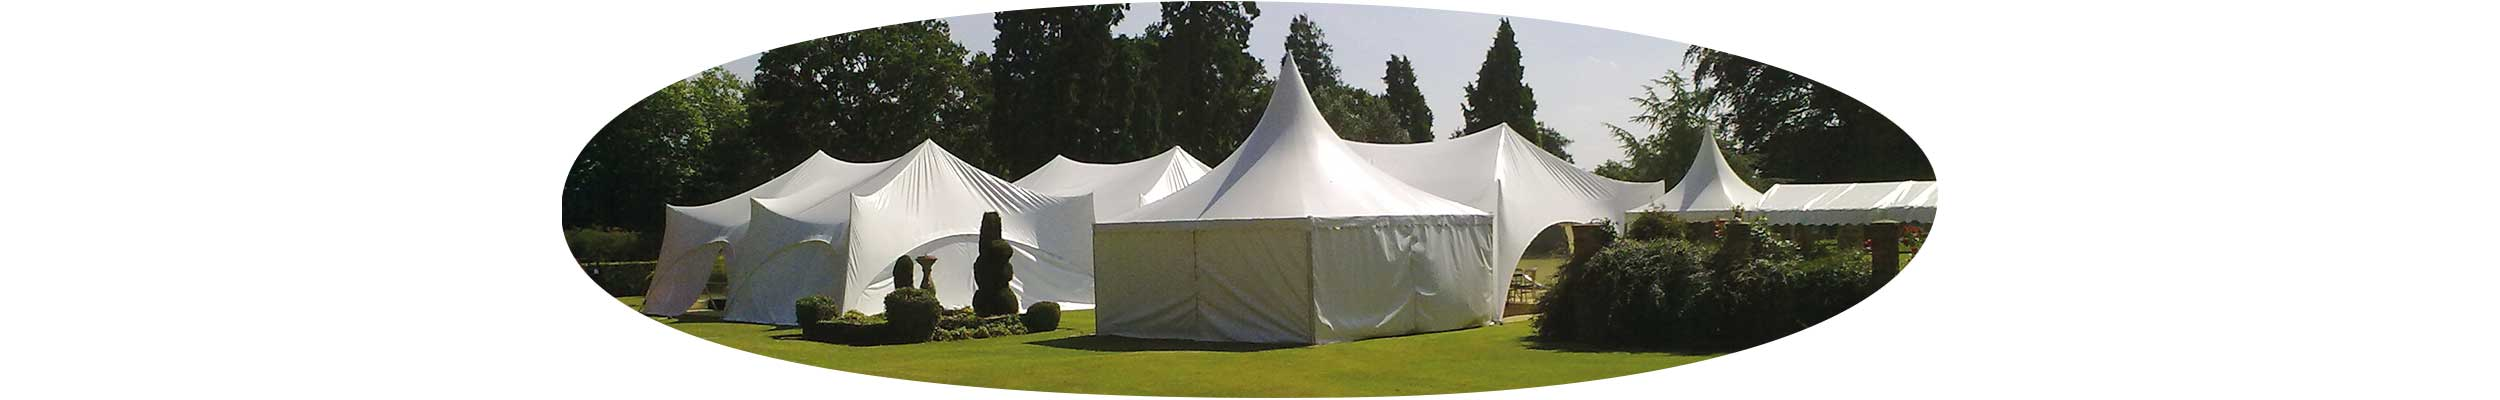 Pavilion Marquees for rent in Oxfordshire, Buckinghamshire, Berkshire, Cotswolds, Wiltshire, Northamptonshire, Warwickshire and Gloucestershire